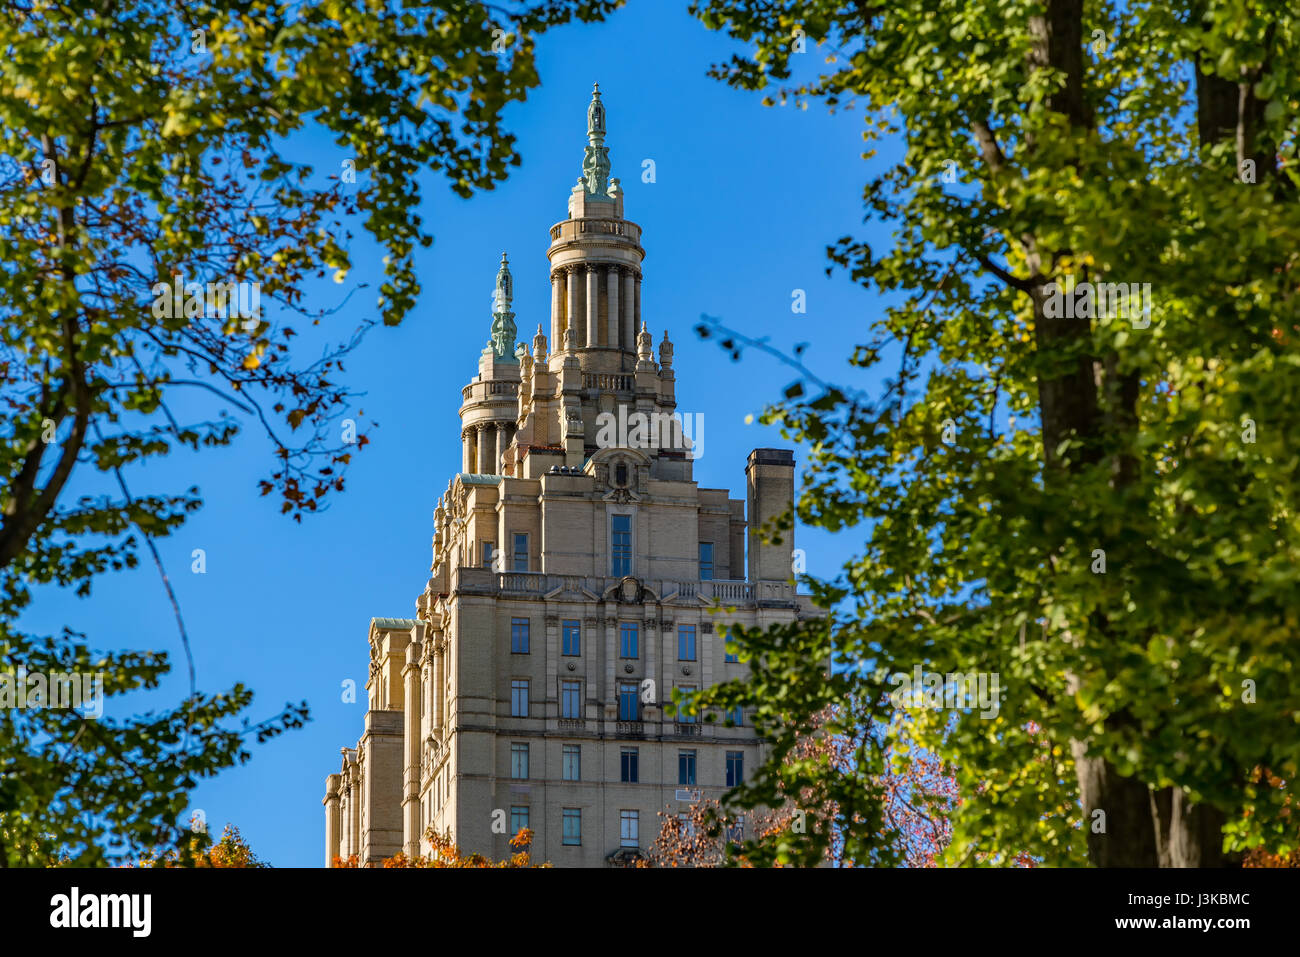 The towers of the San Remo building in Upper West Side. Manhattan, New York City - Stock Image